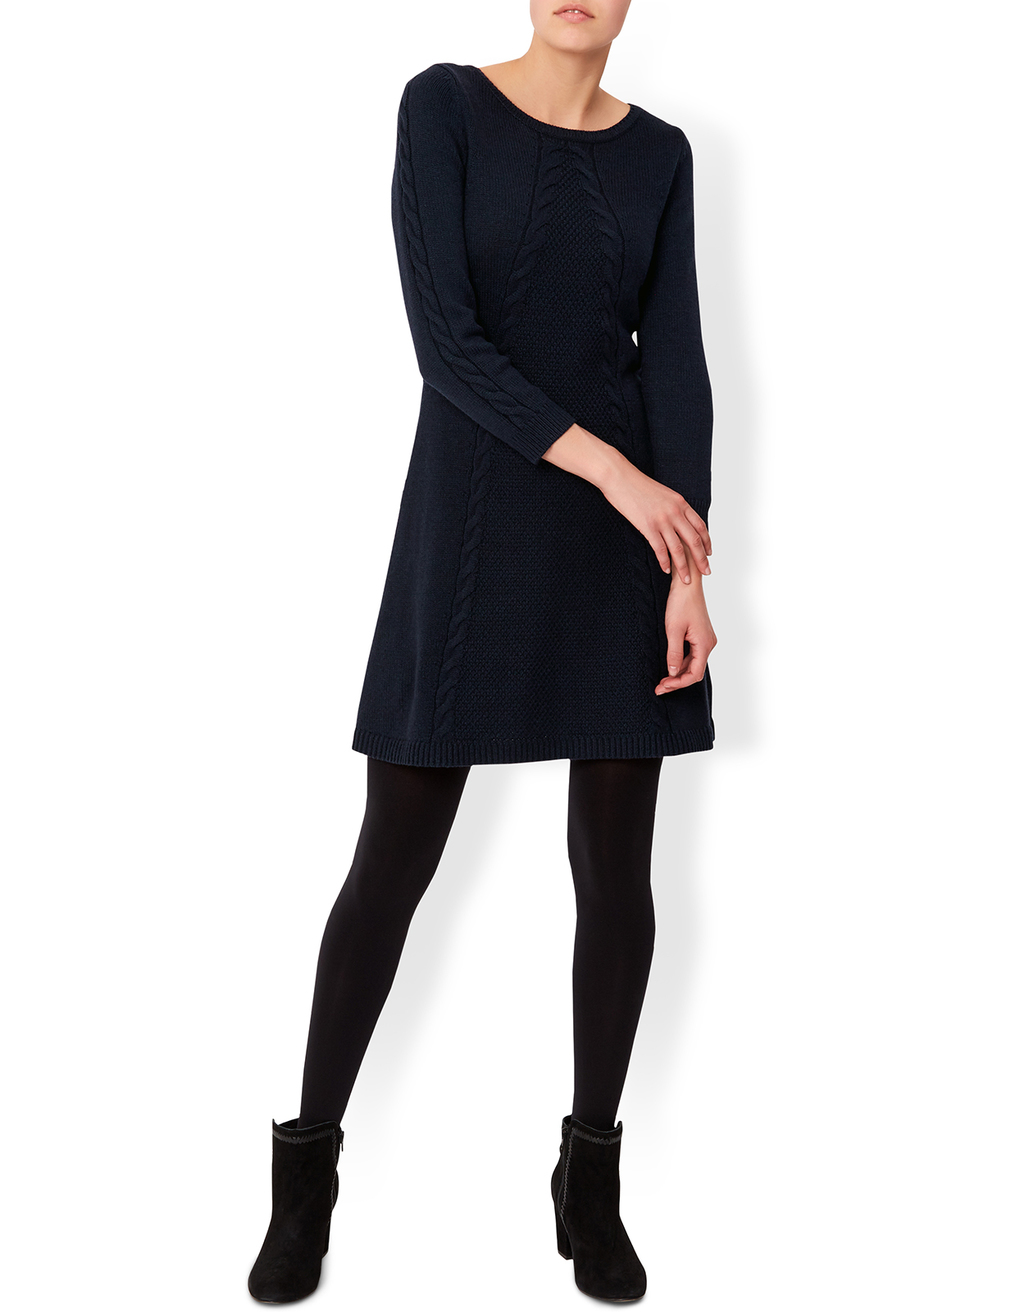 Cacey Cable Knitted Long Sleeve Dress - pattern: cable knit; predominant colour: navy; occasions: casual; length: just above the knee; fit: fitted at waist & bust; style: fit & flare; fibres: cotton - mix; neckline: crew; sleeve length: 3/4 length; sleeve style: standard; texture group: knits/crochet; pattern type: knitted - fine stitch; season: a/w 2016; wardrobe: highlight